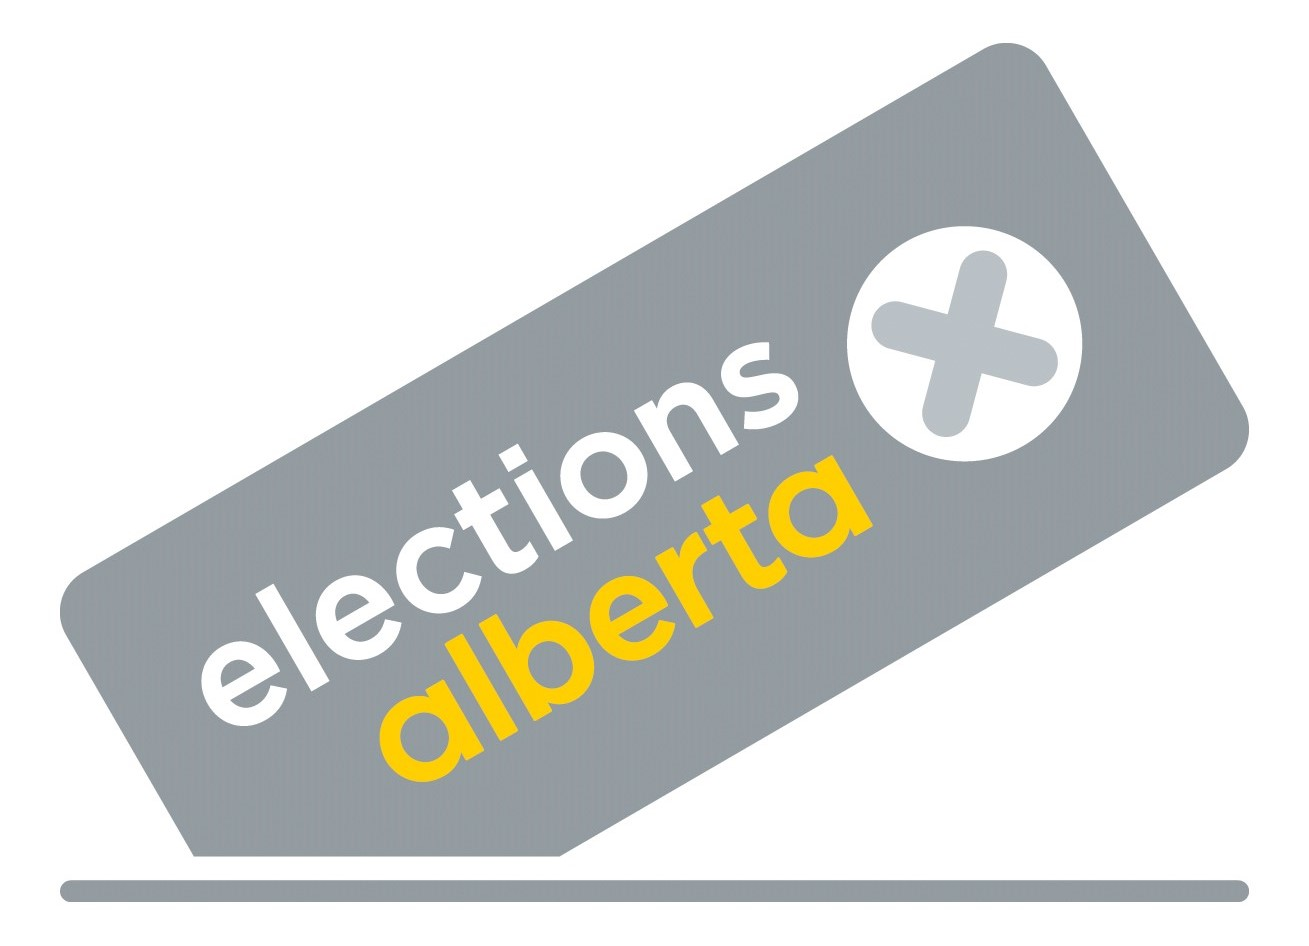 Map Of Canada 2017 Election Results.Election Results Elections Alberta